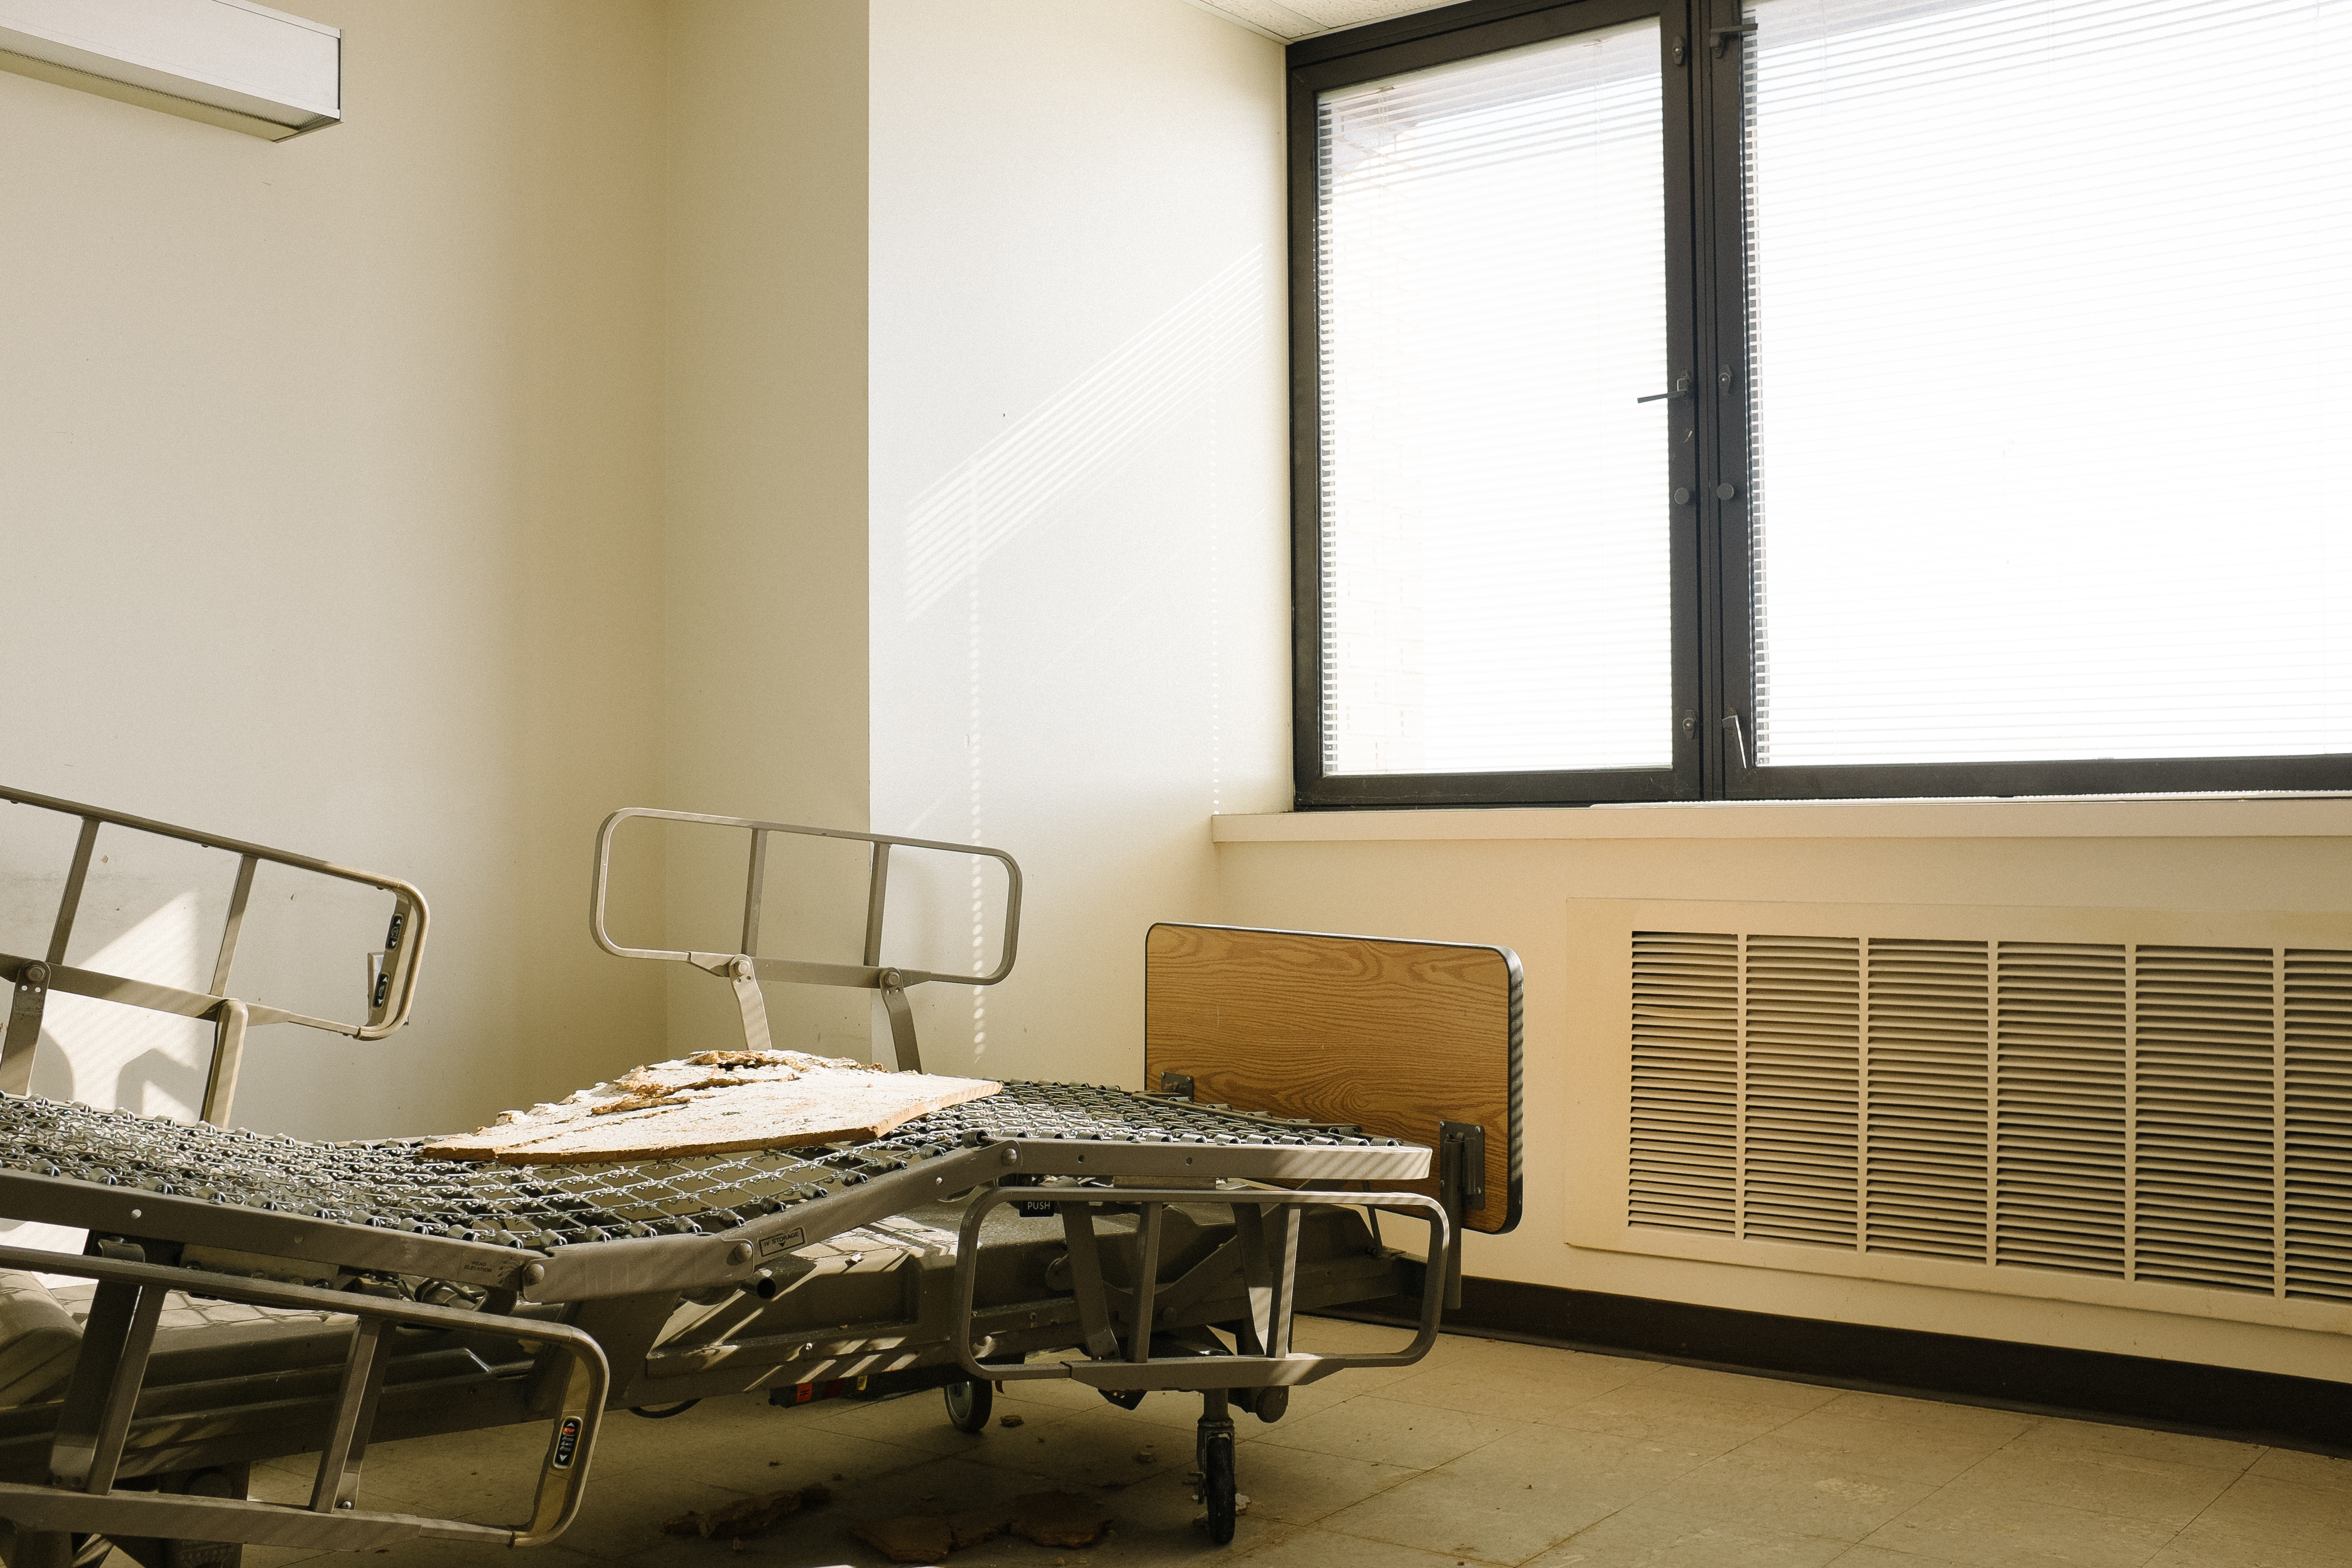 A Look Inside the Final Days of South Philly's Mount Sinai Hospital